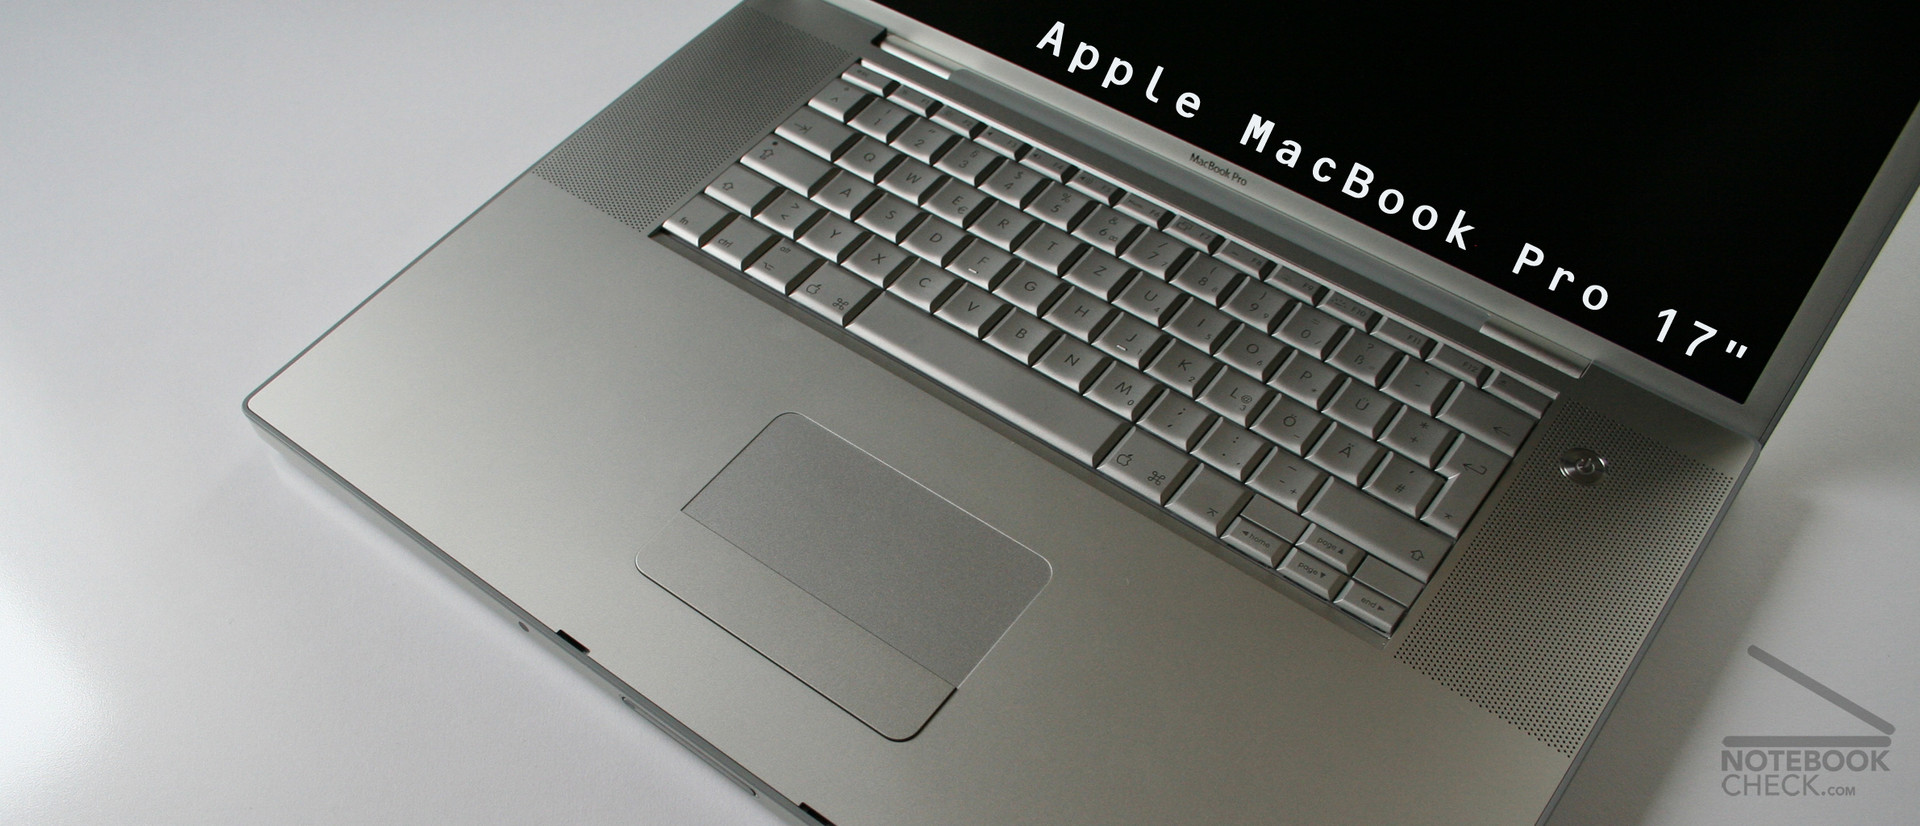 Review Apple MacBook Pro 17 inch - NotebookCheck.net Reviews